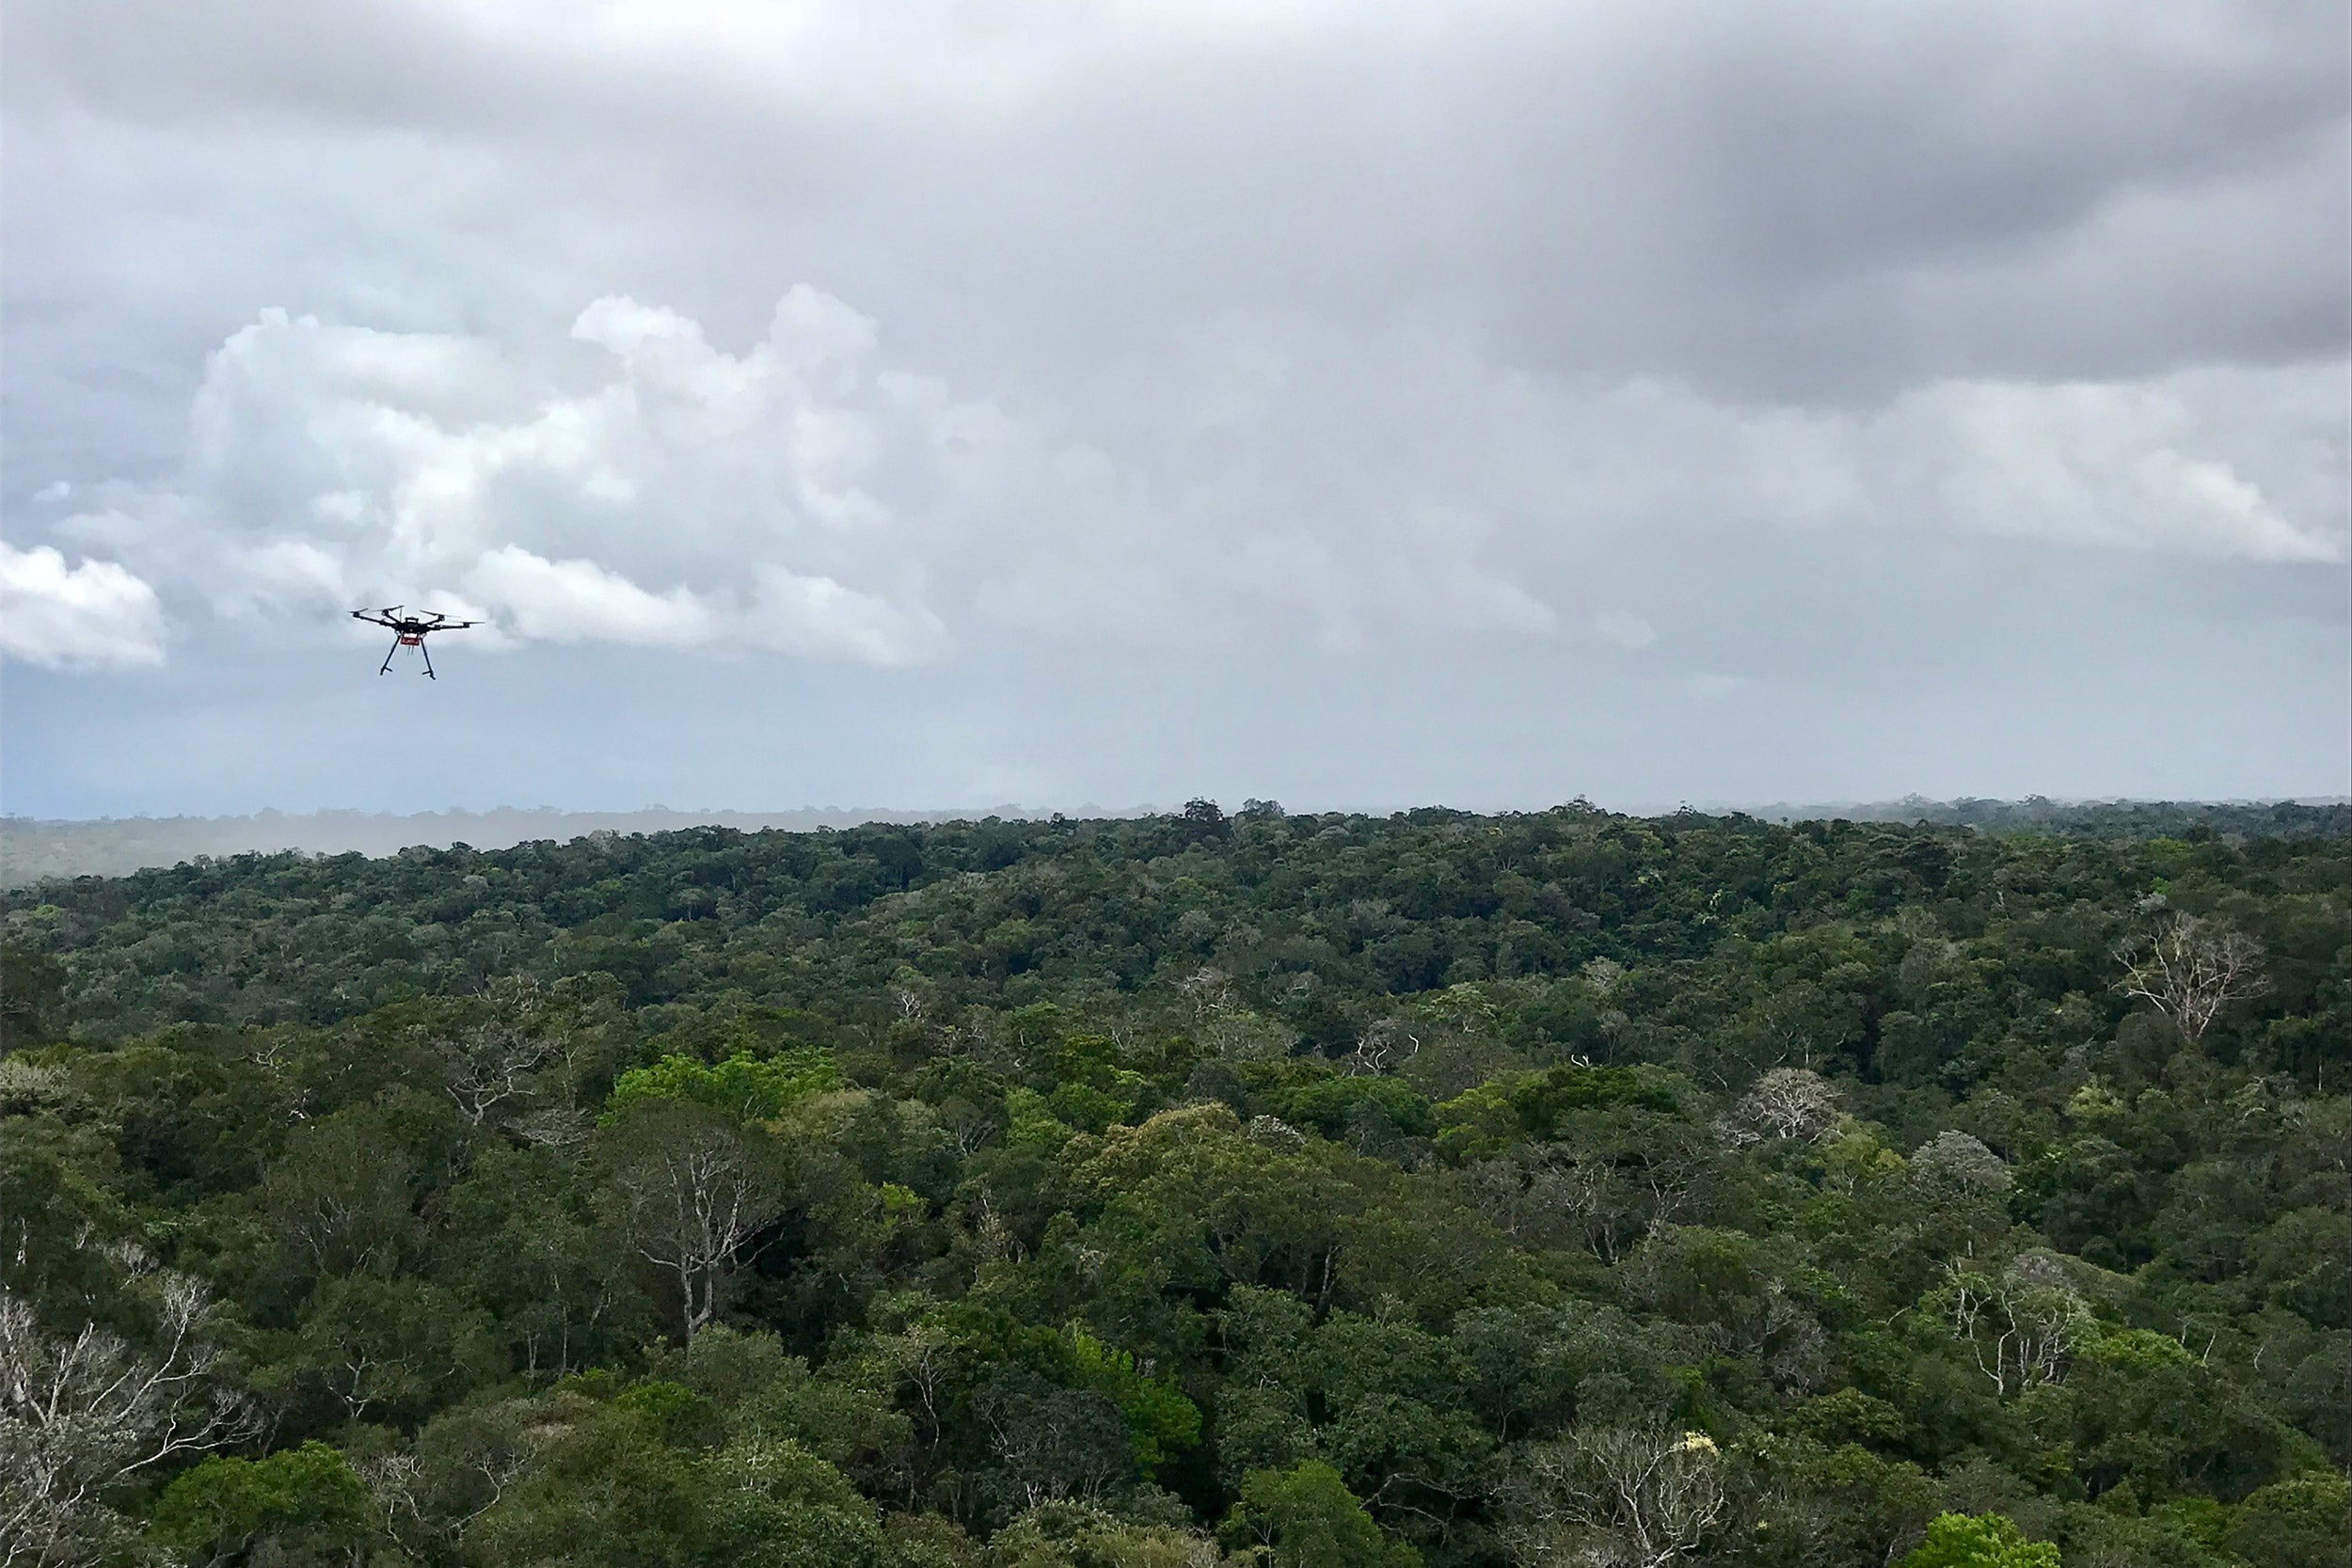 A drone flies over the amazon